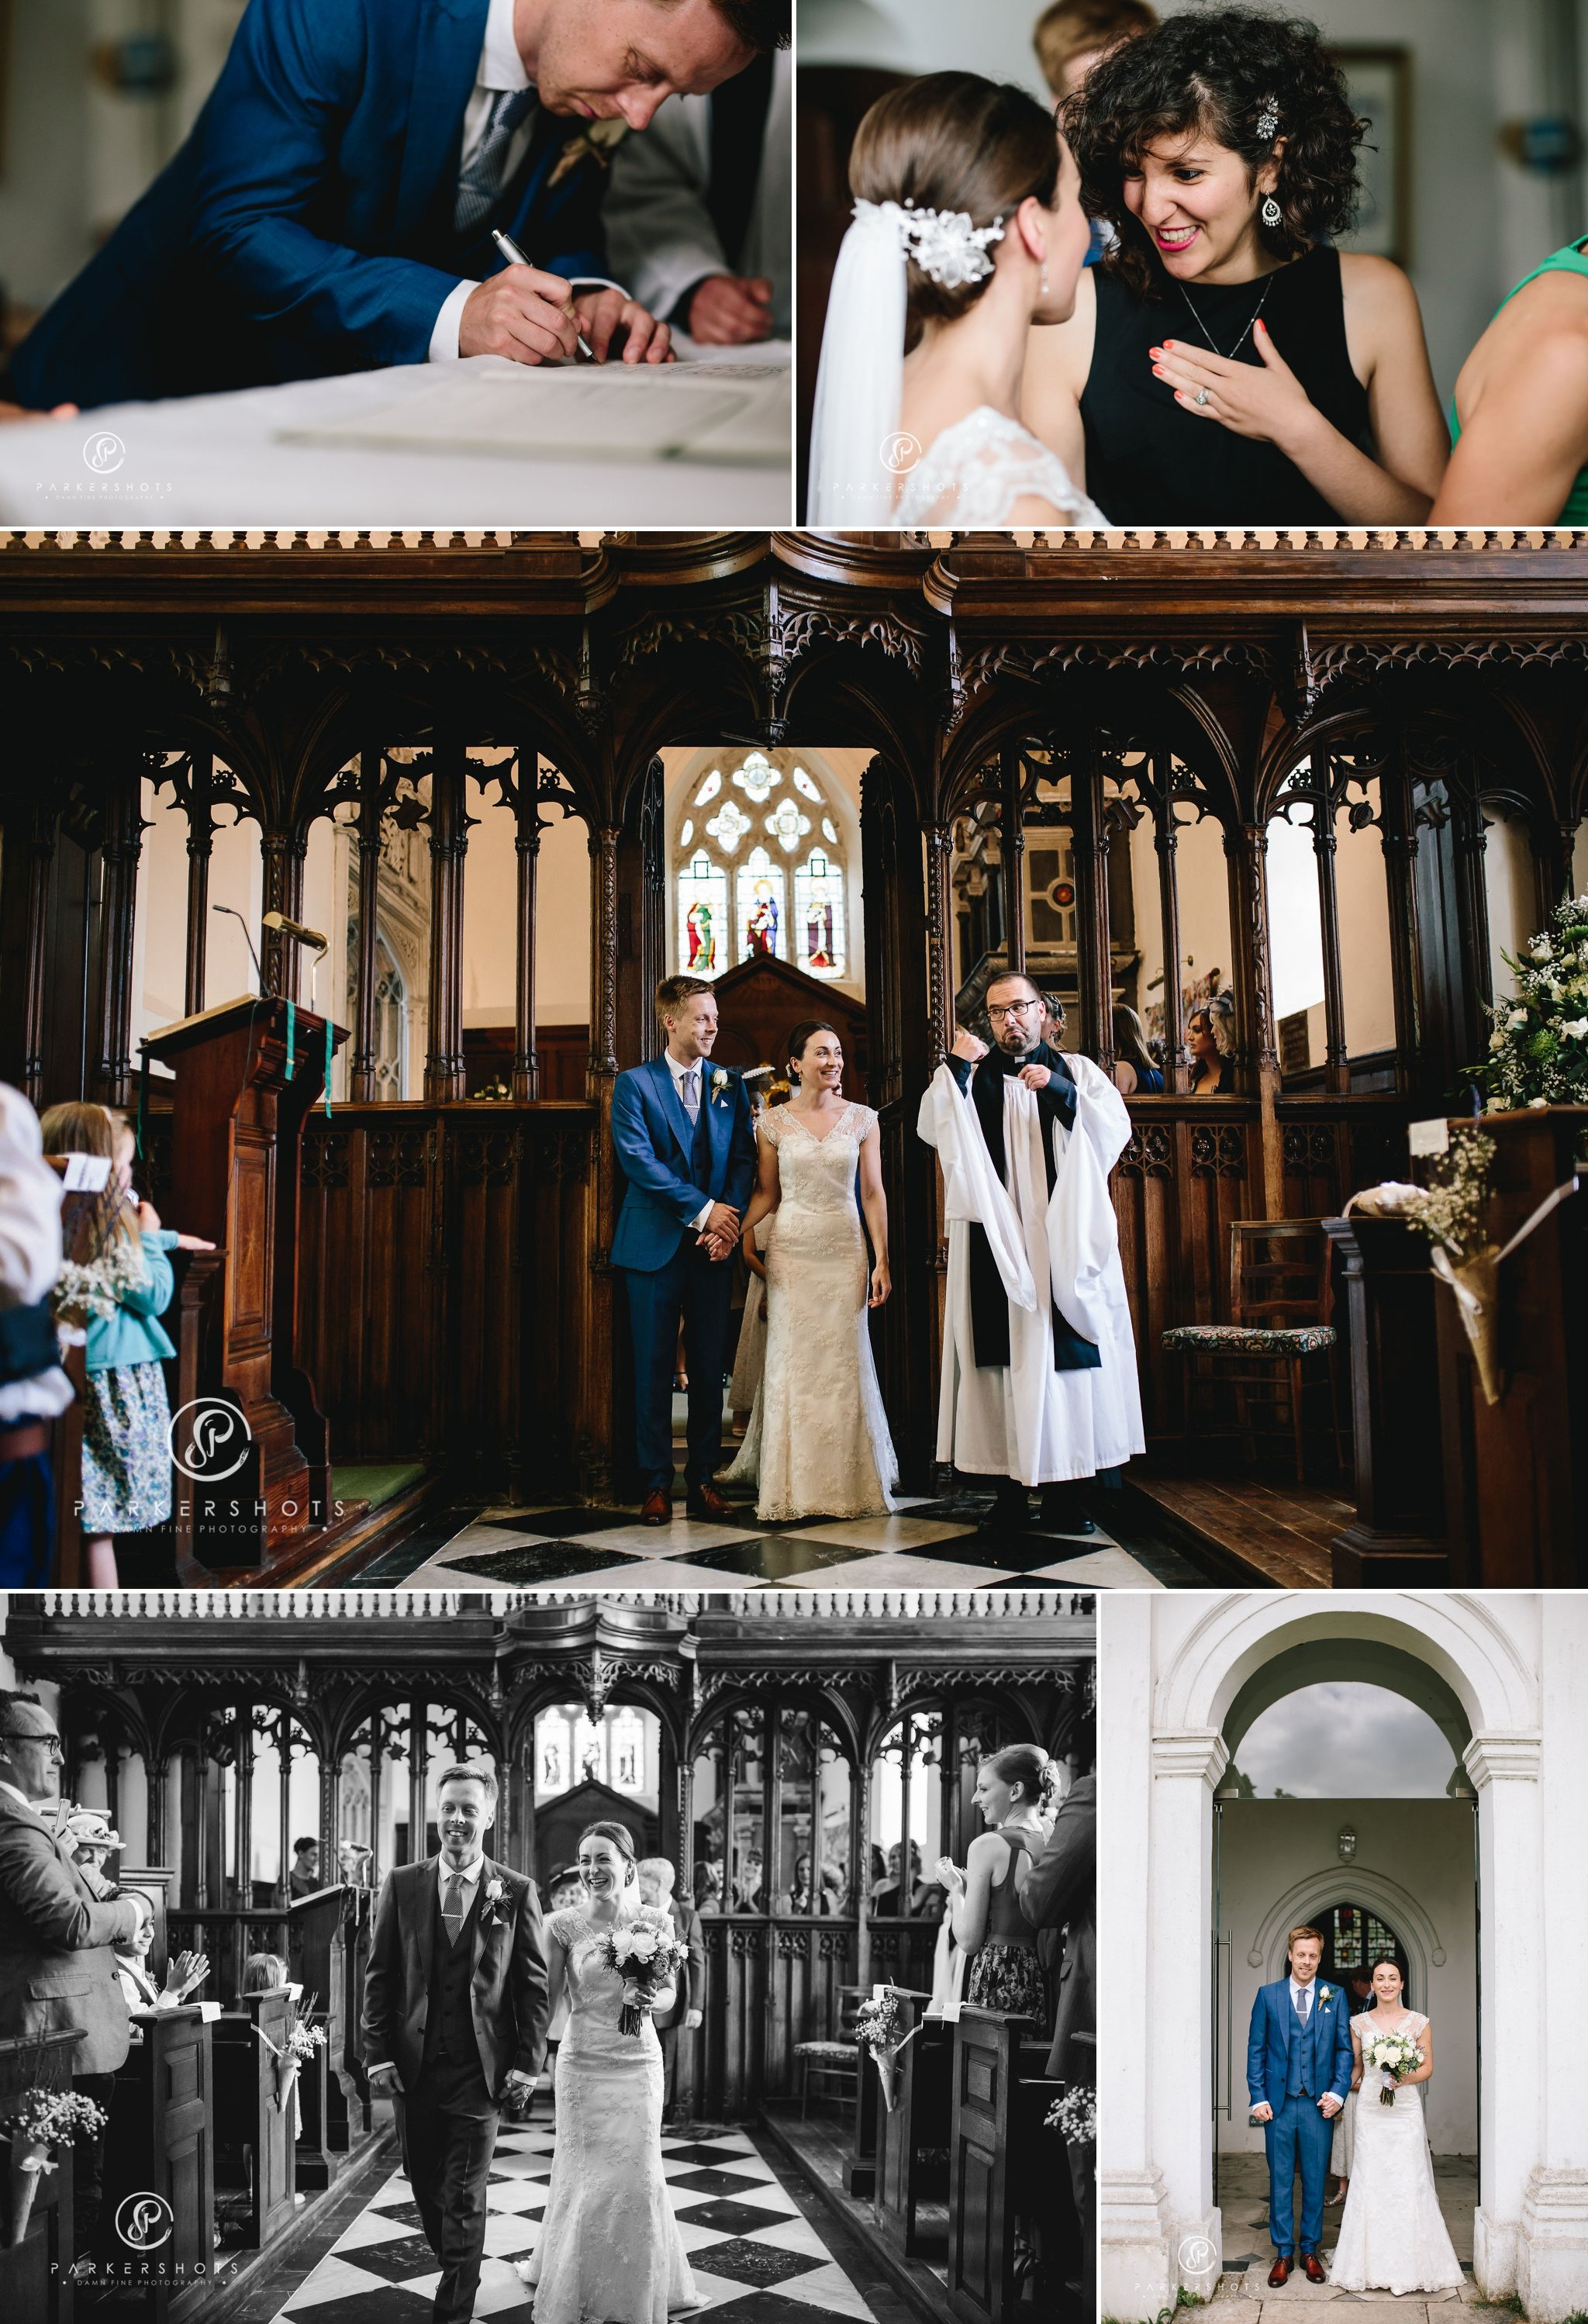 Wedding photography of ceremony at Lullingstone Castle